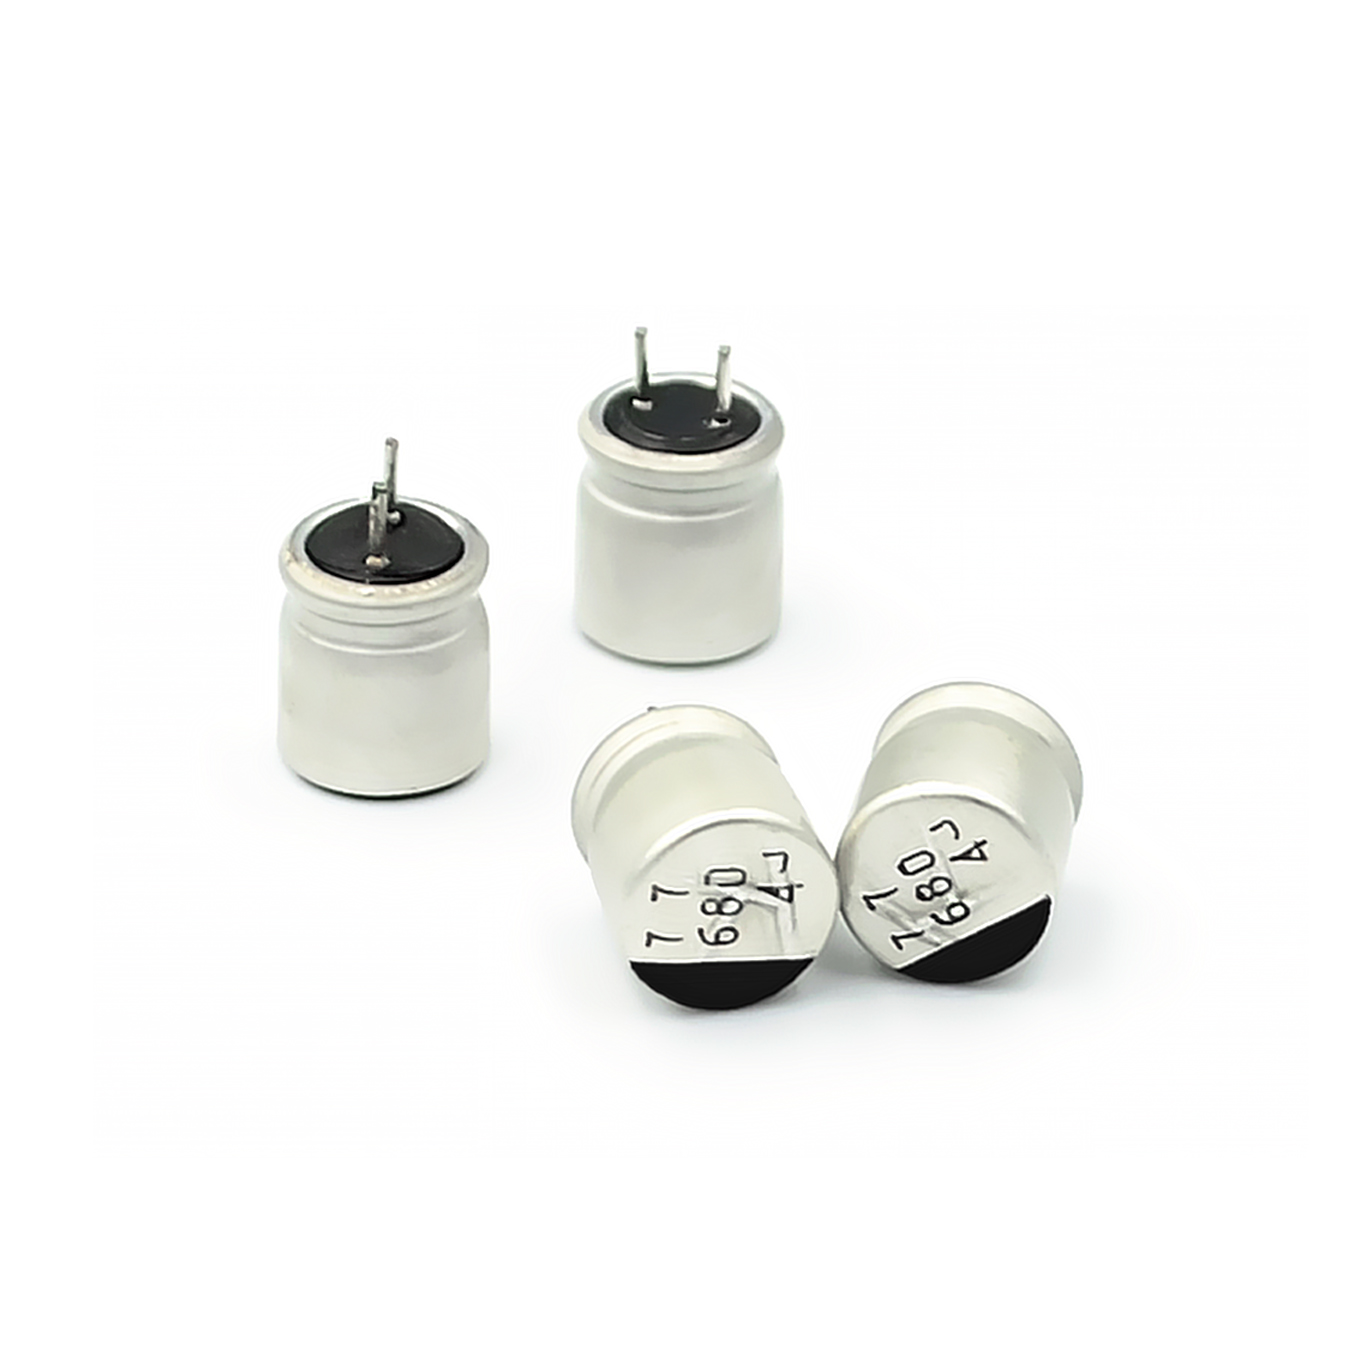 20PCS electrolytic <font><b>capacitors</b></font> <font><b>680uF</b></font> <font><b>4V</b></font> 8*8mm image